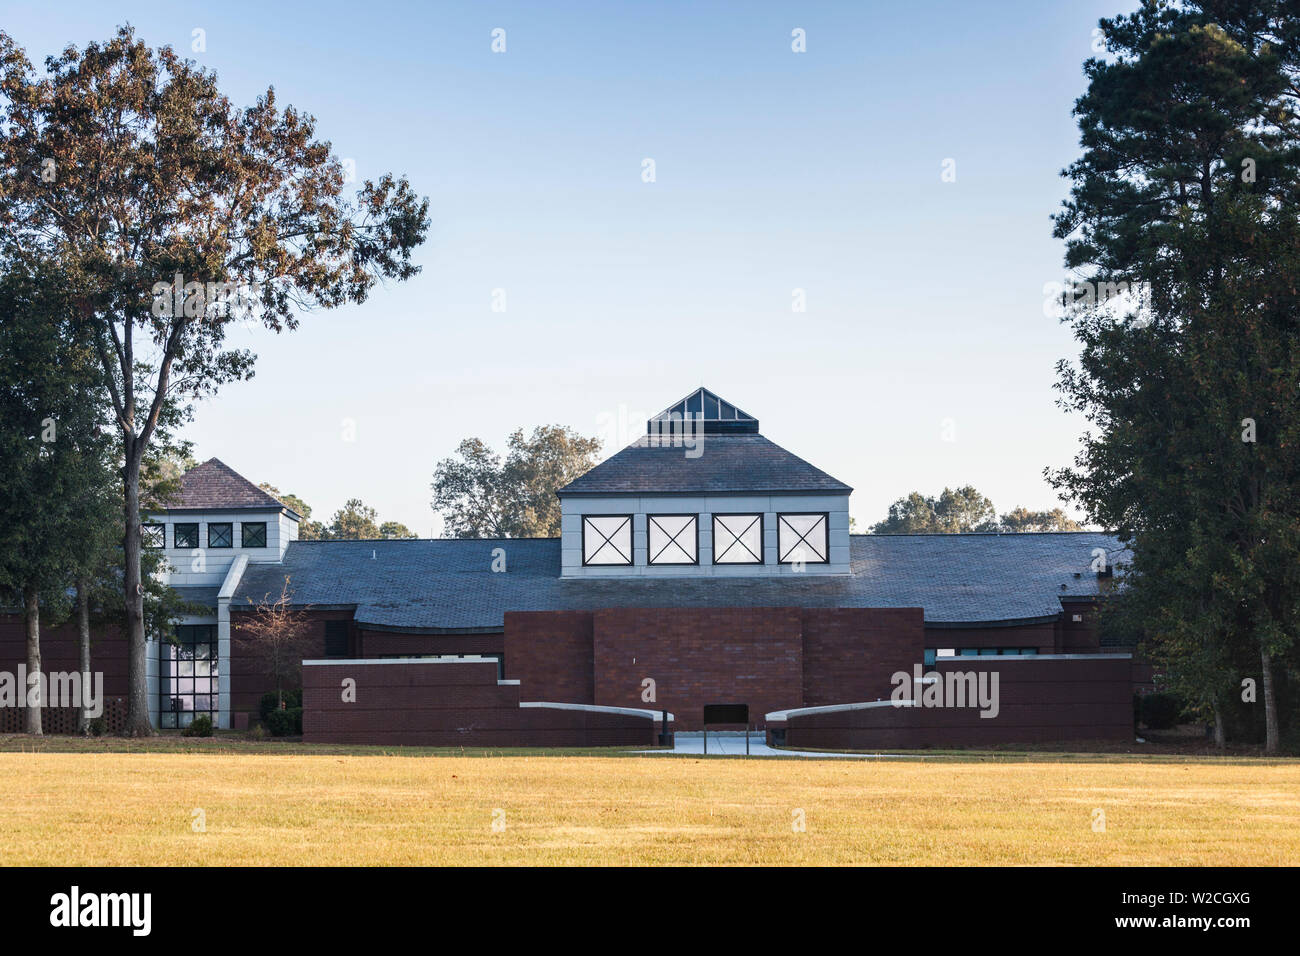 USA, Georgia, Andersonville, Andersonville National Historic Site, site of the fist Civil War-era Prisoner-of-War camp, National Prisoner-of-War Museum - Stock Image